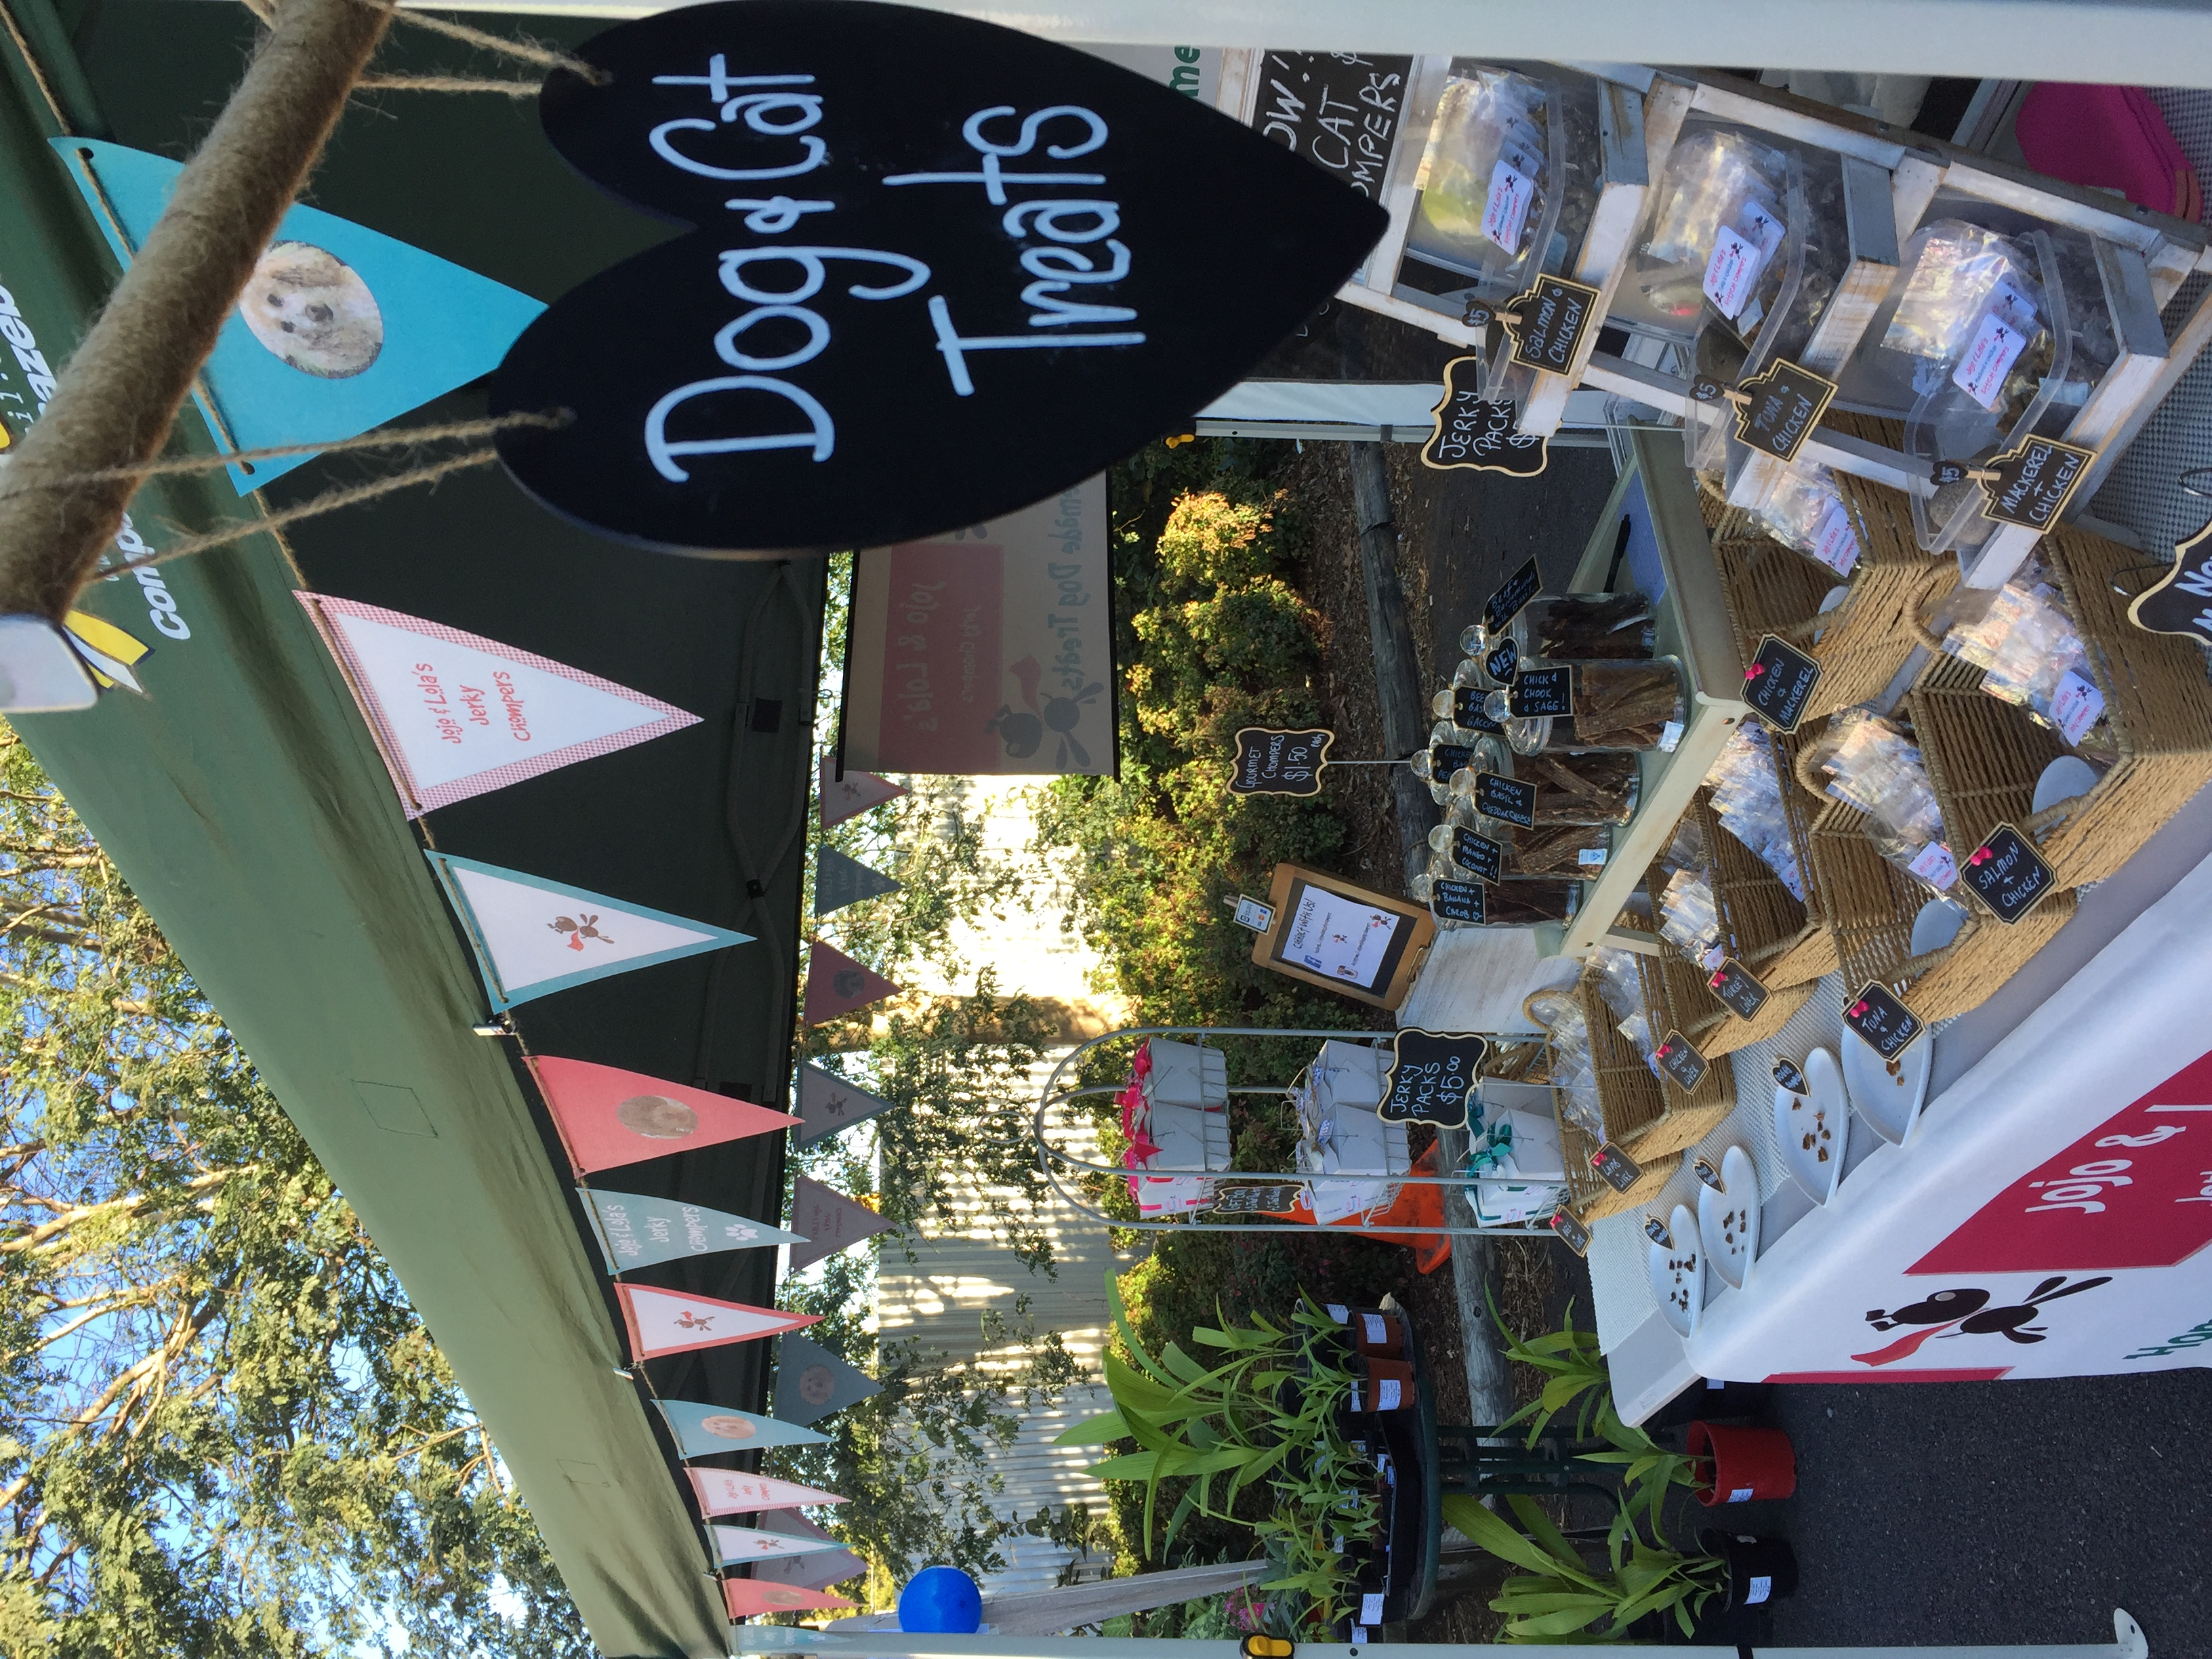 Nundah Farmers Markets